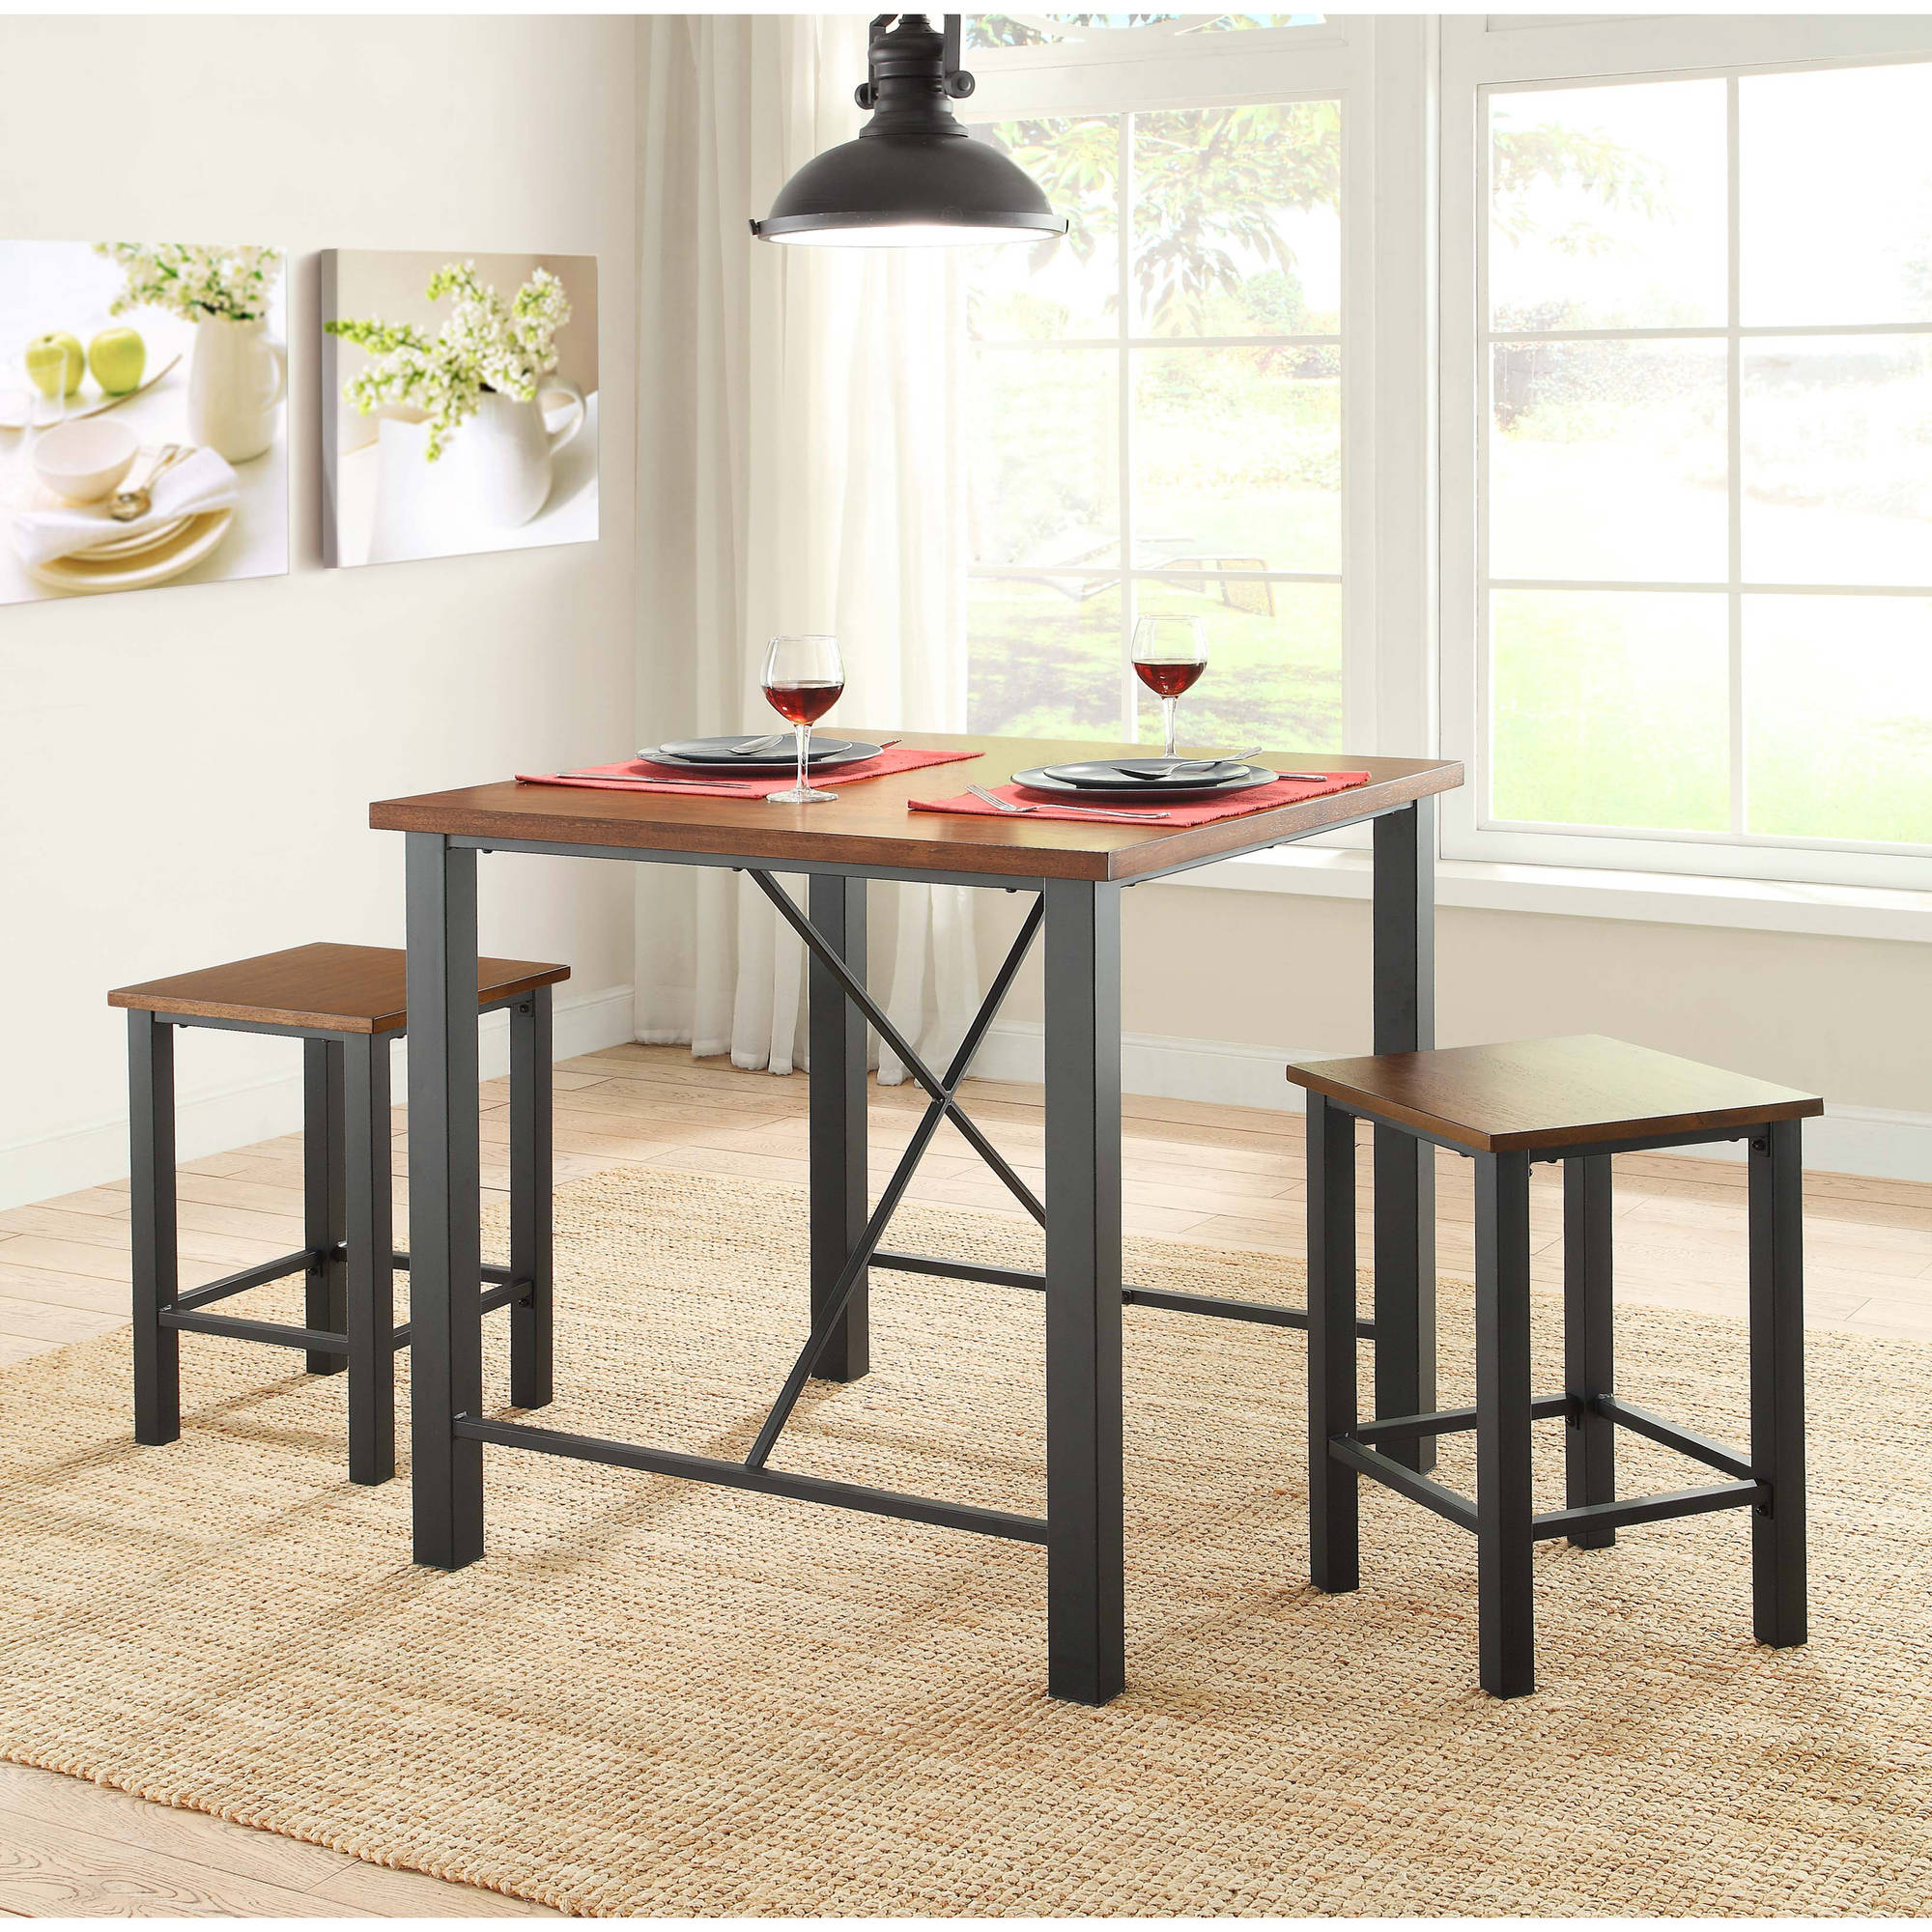 Amazing Whalen Industria 3 Piece Counter Height Dining Set, Brown